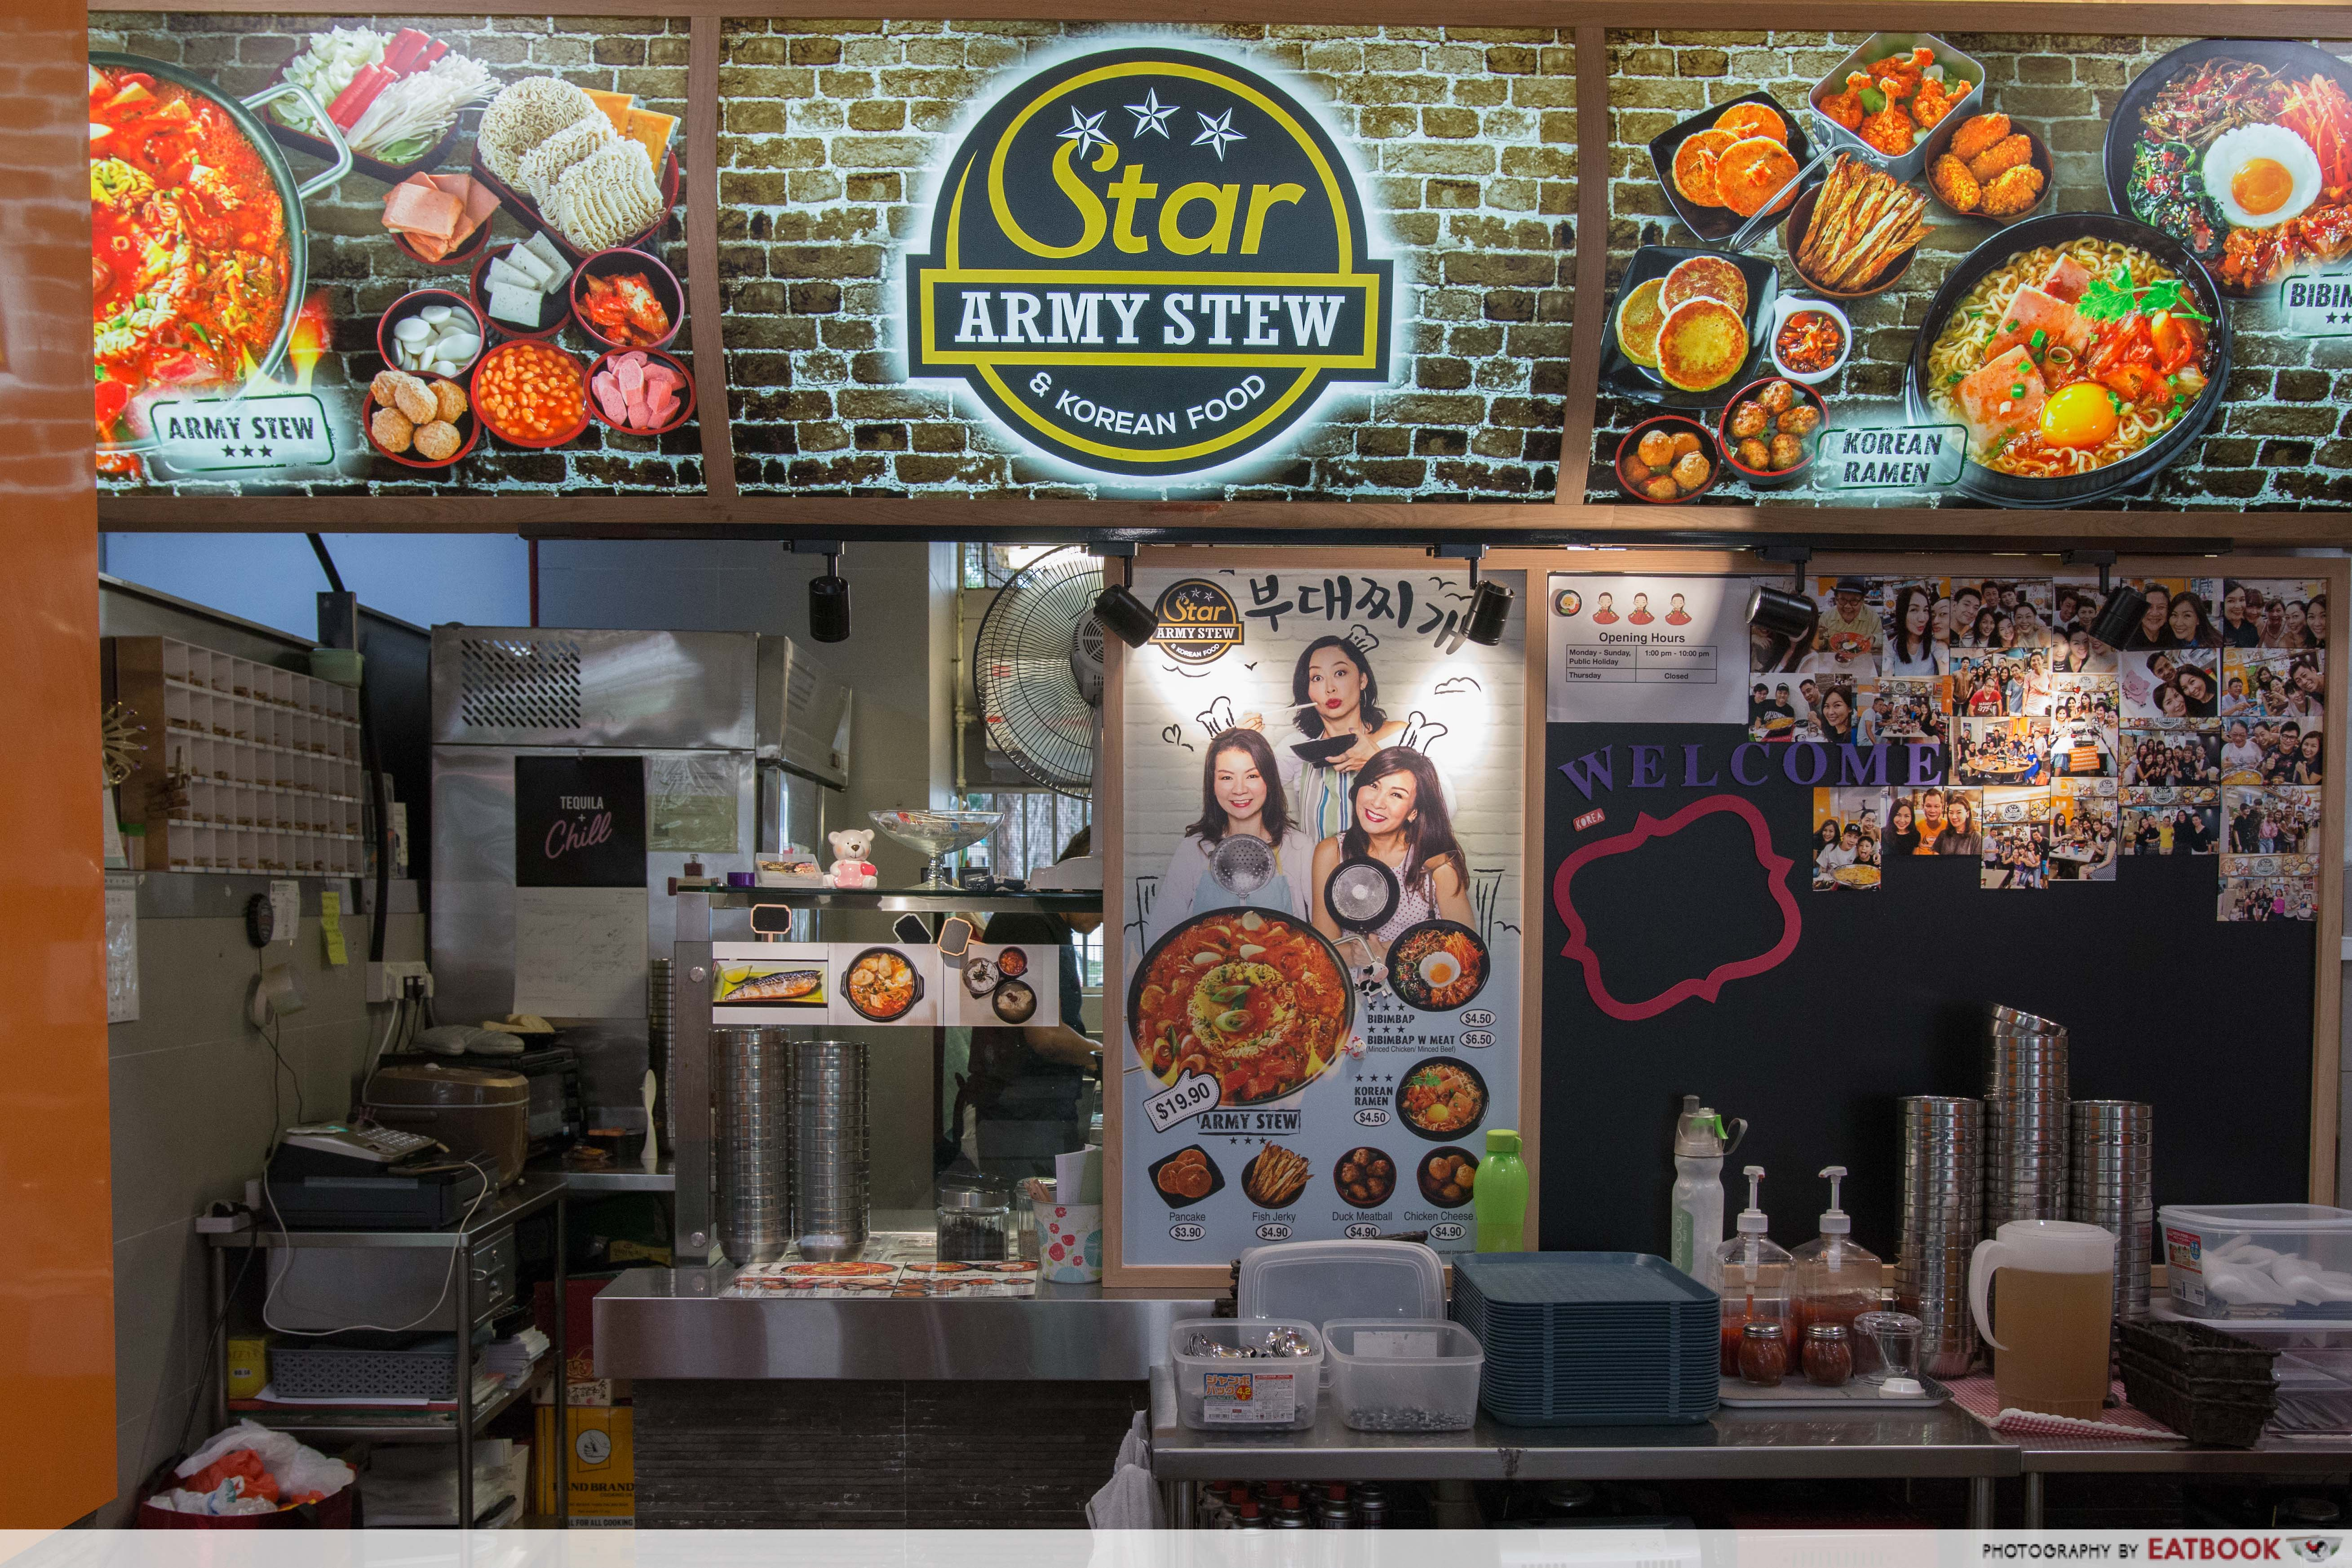 Star Army Stew - storefront